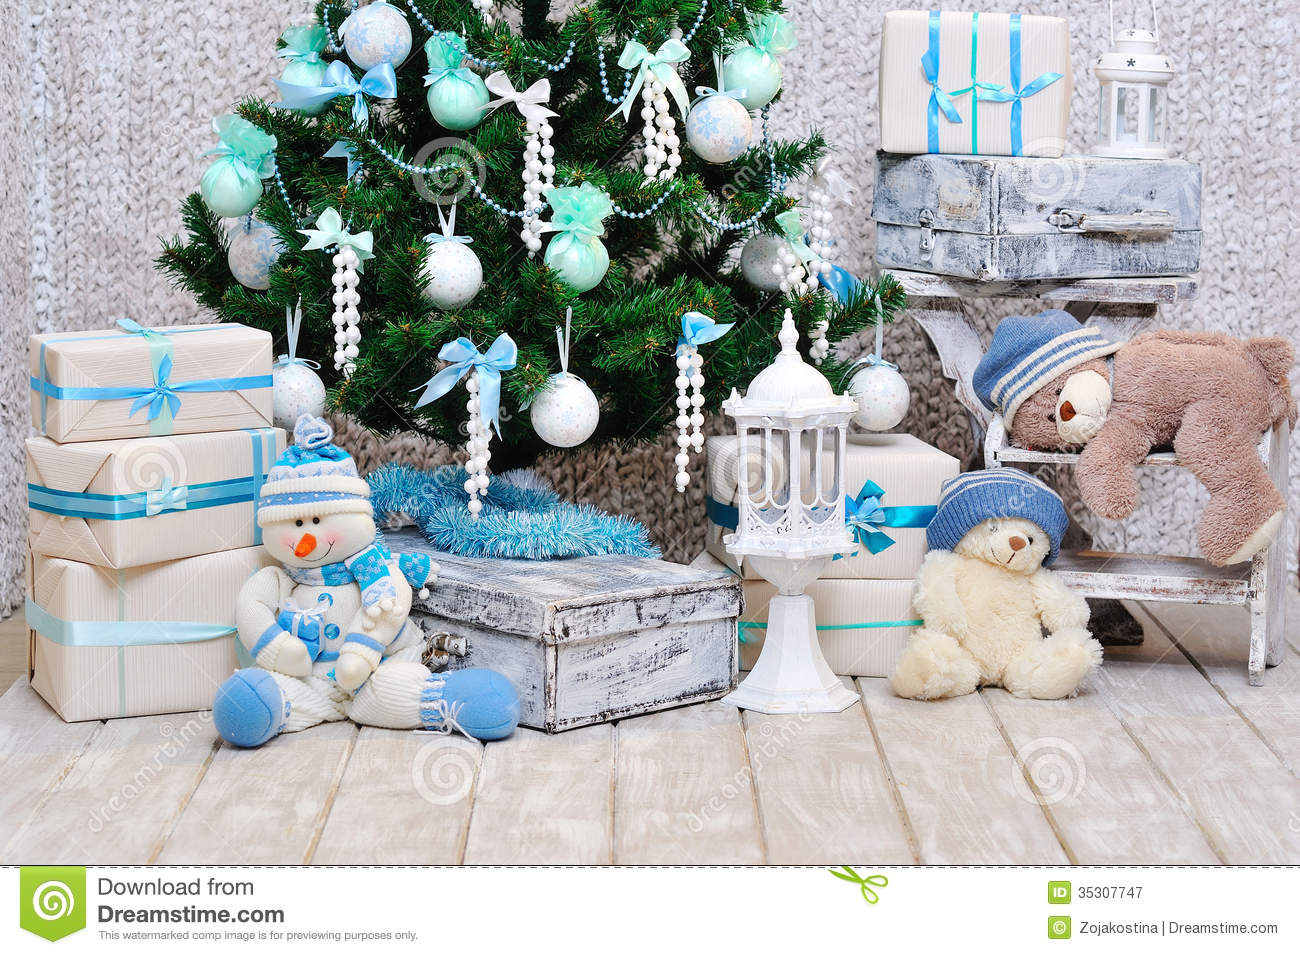 Closeup of cosy interior Christmas decoration with pine tree and teddy